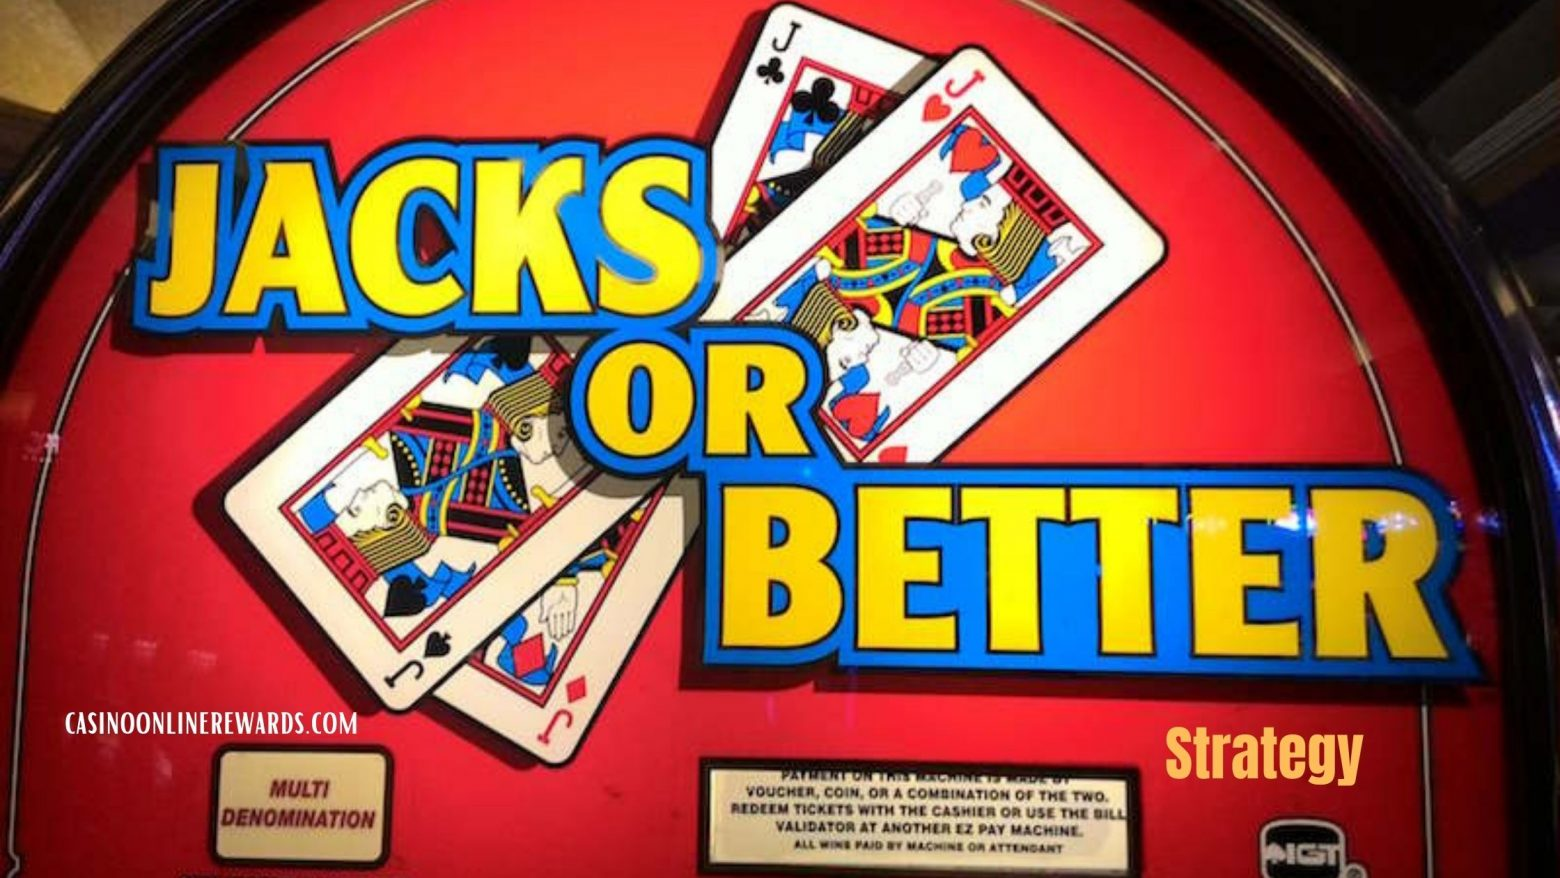 The best of Jacks or better strategy For You